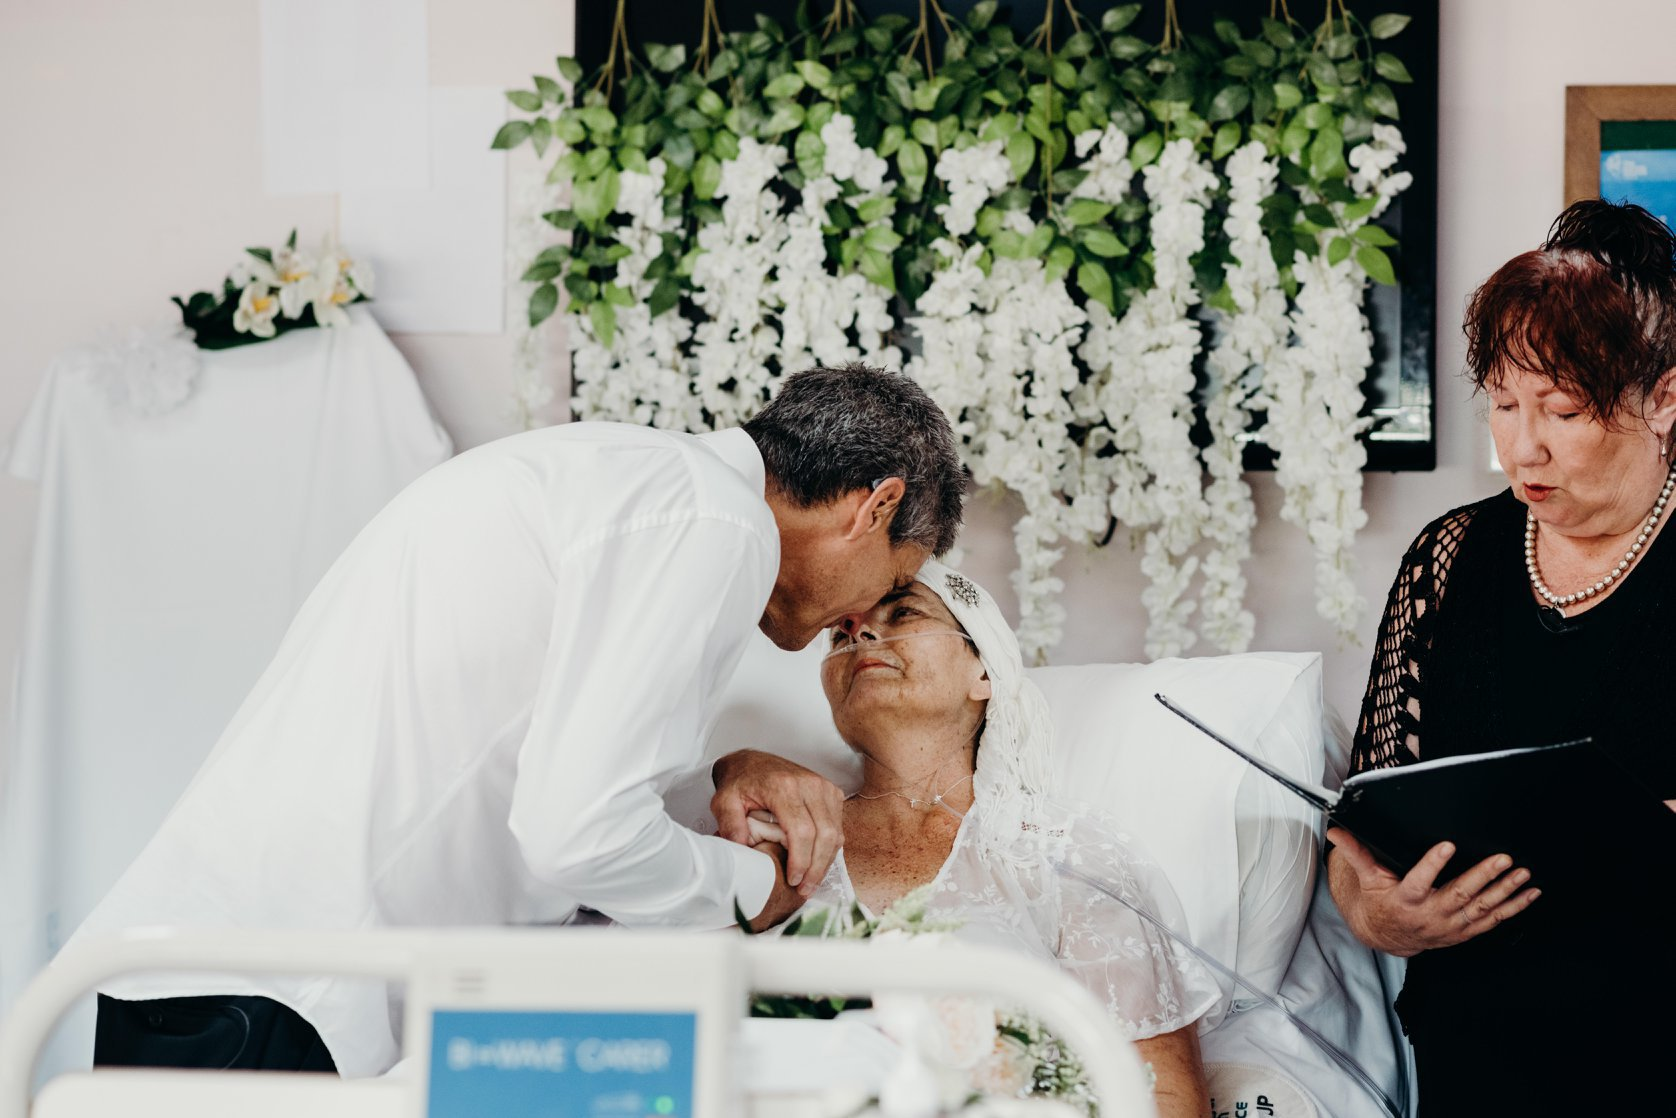 Woman with terminal cancer finally marries the love of her life hours before she dies